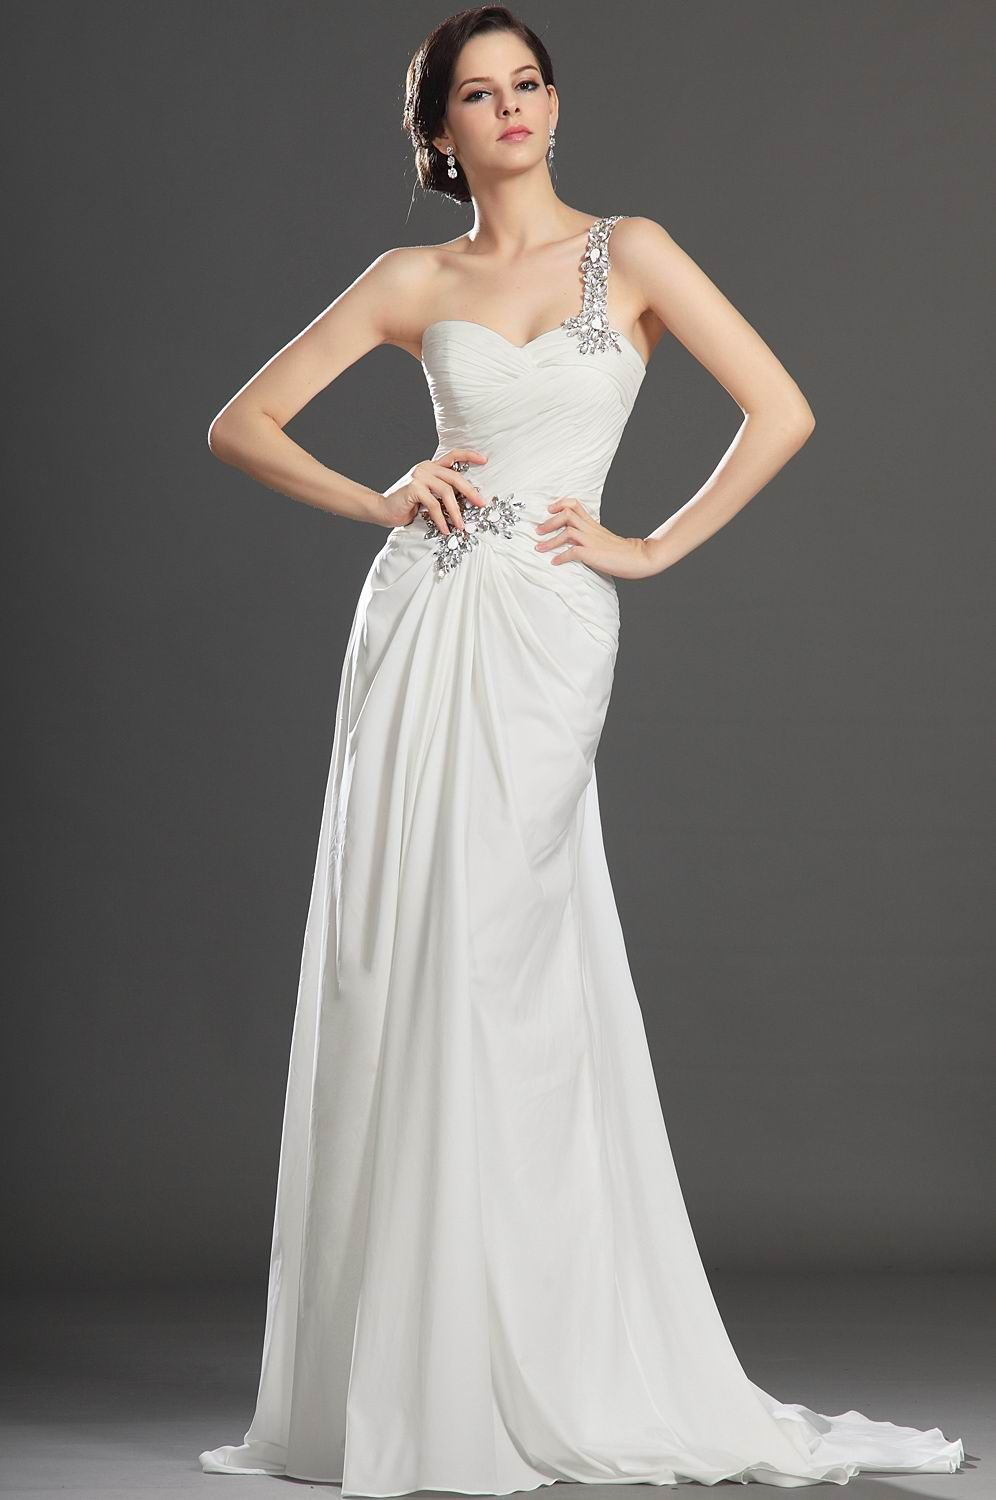 Floor-Length-White-Long-party-Dresses | All White Party Dress ...